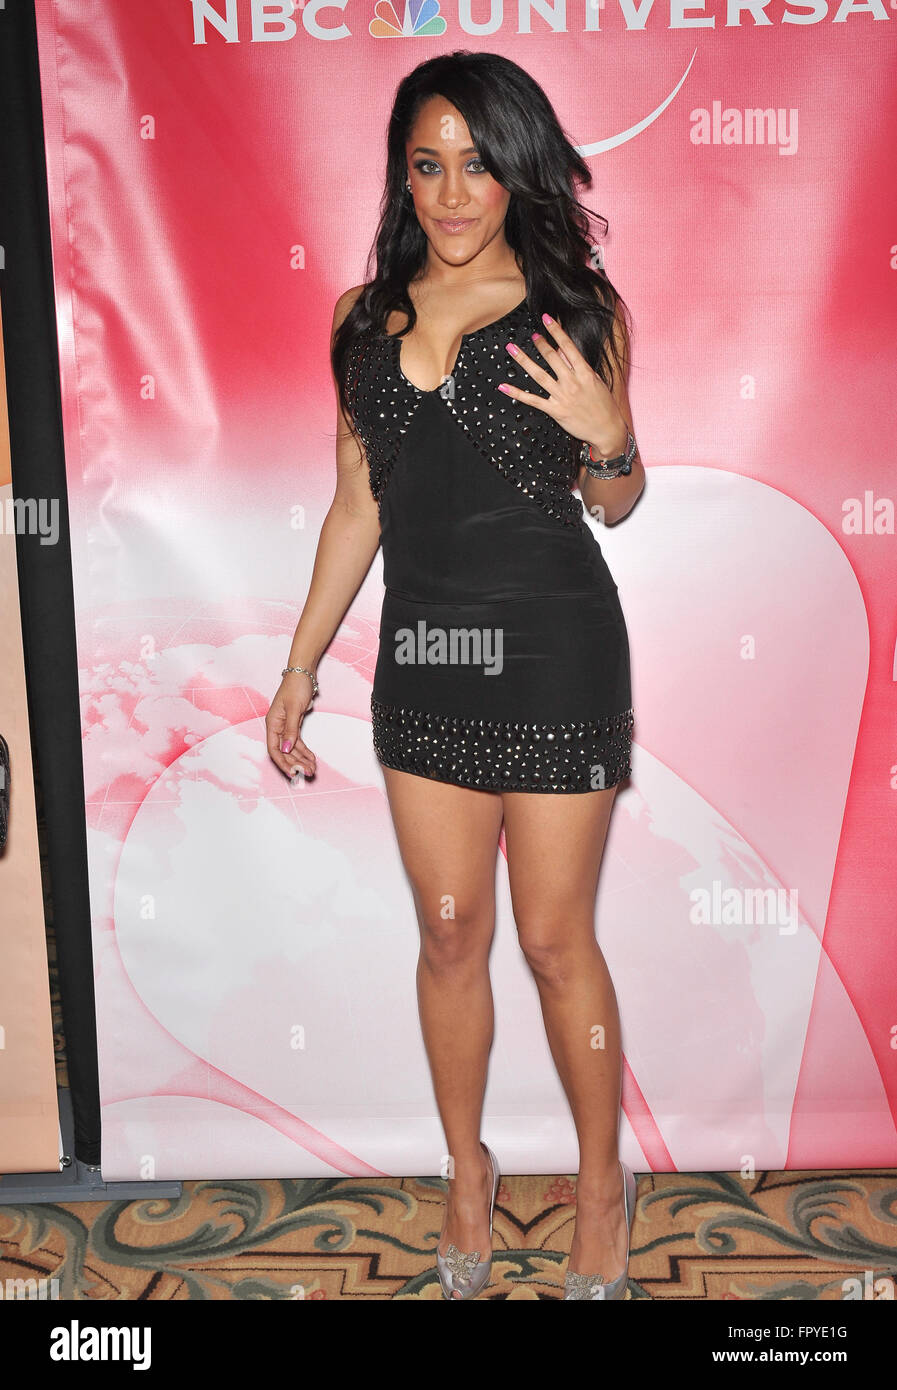 Photos Natalie Nunn nudes (67 foto and video), Pussy, Sideboobs, Twitter, swimsuit 2020